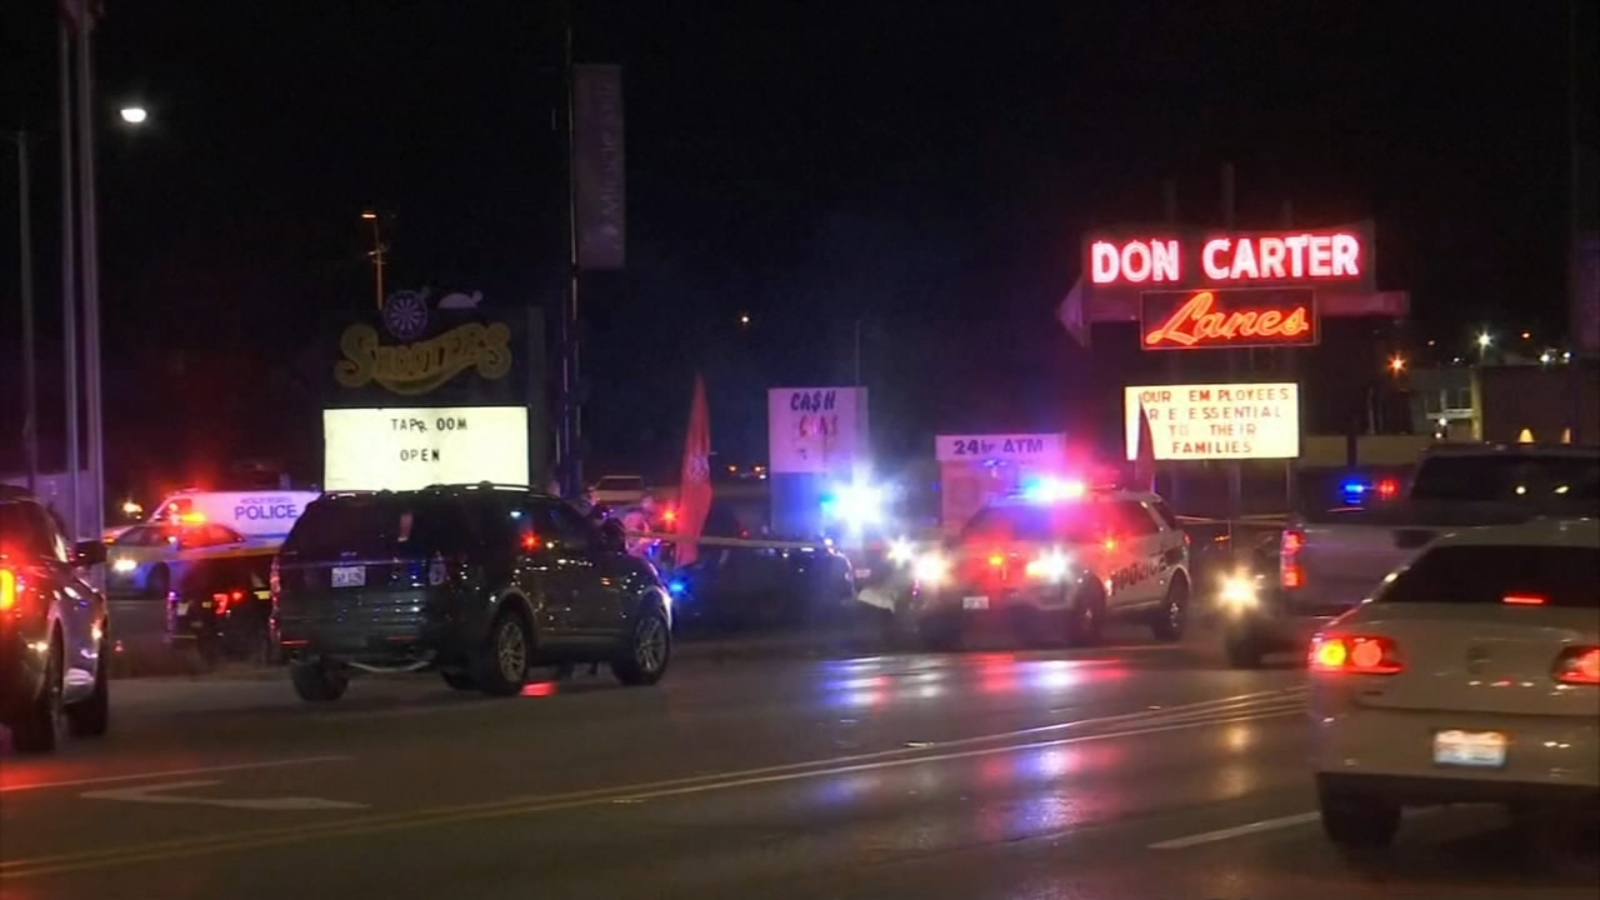 Rockford shooting: Suspect, Duke Webb, detained after 6 shots, 3 killed in apparent randomness at bowling alley Don Carter Lanes